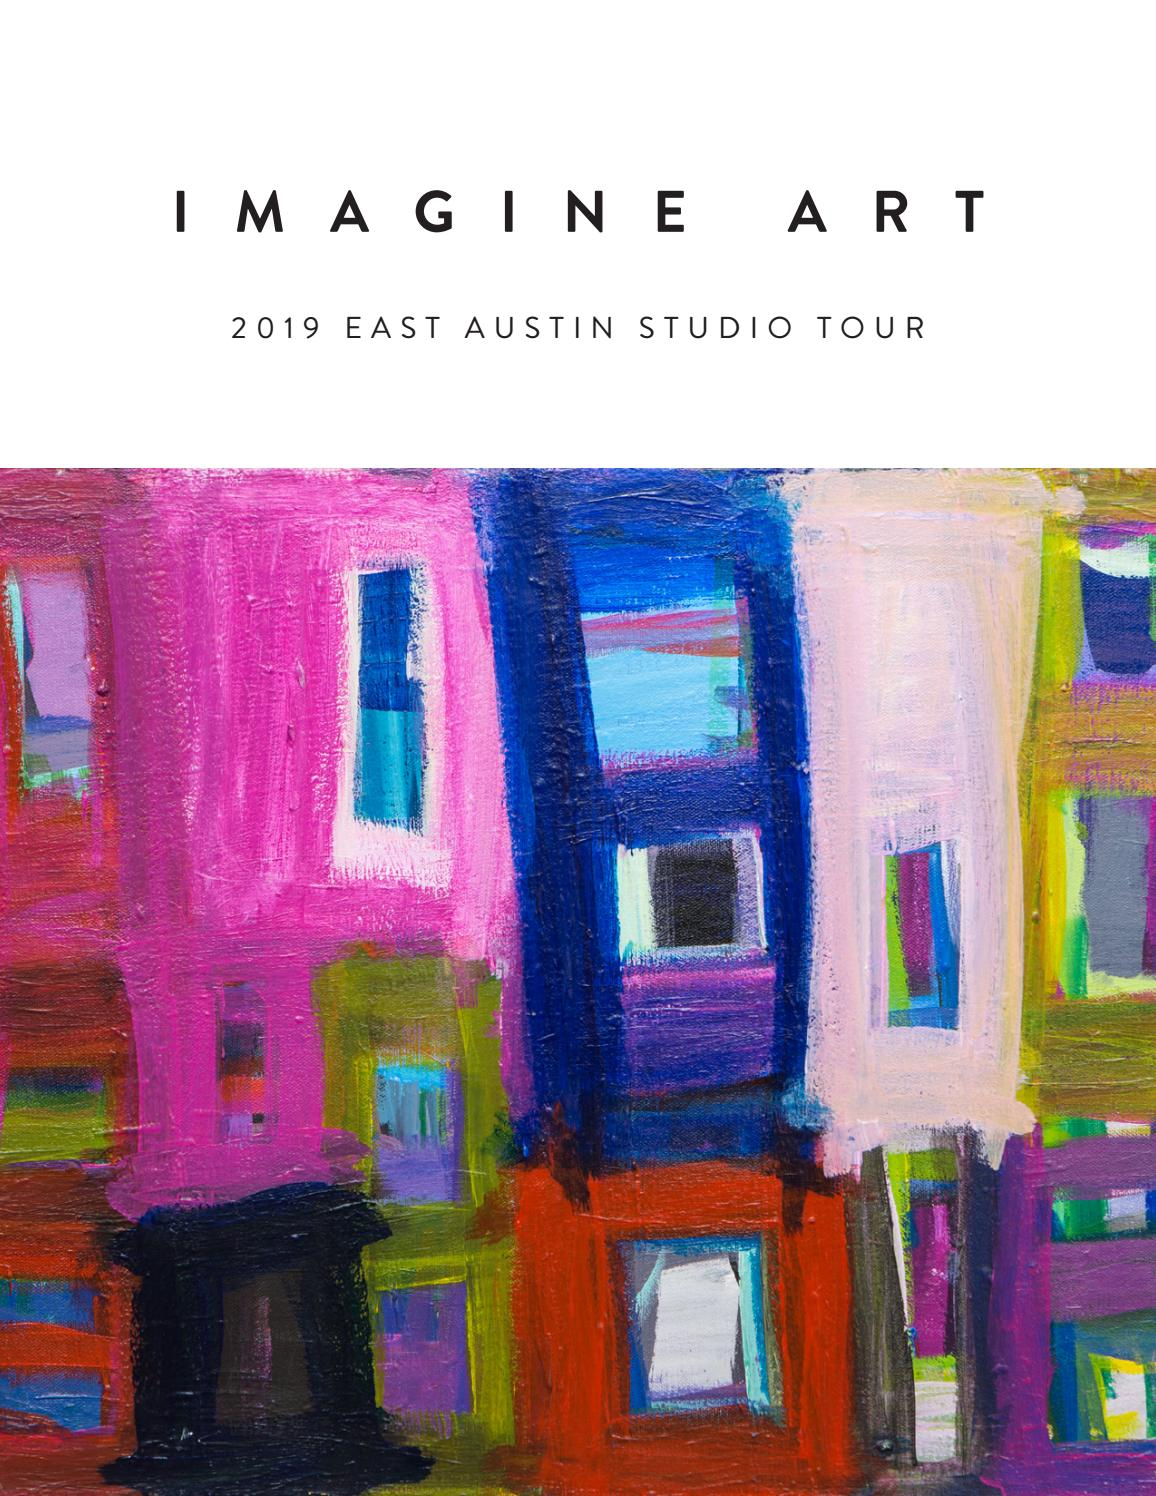 2019 East Austin Studio Tour By Imagineart Issuu